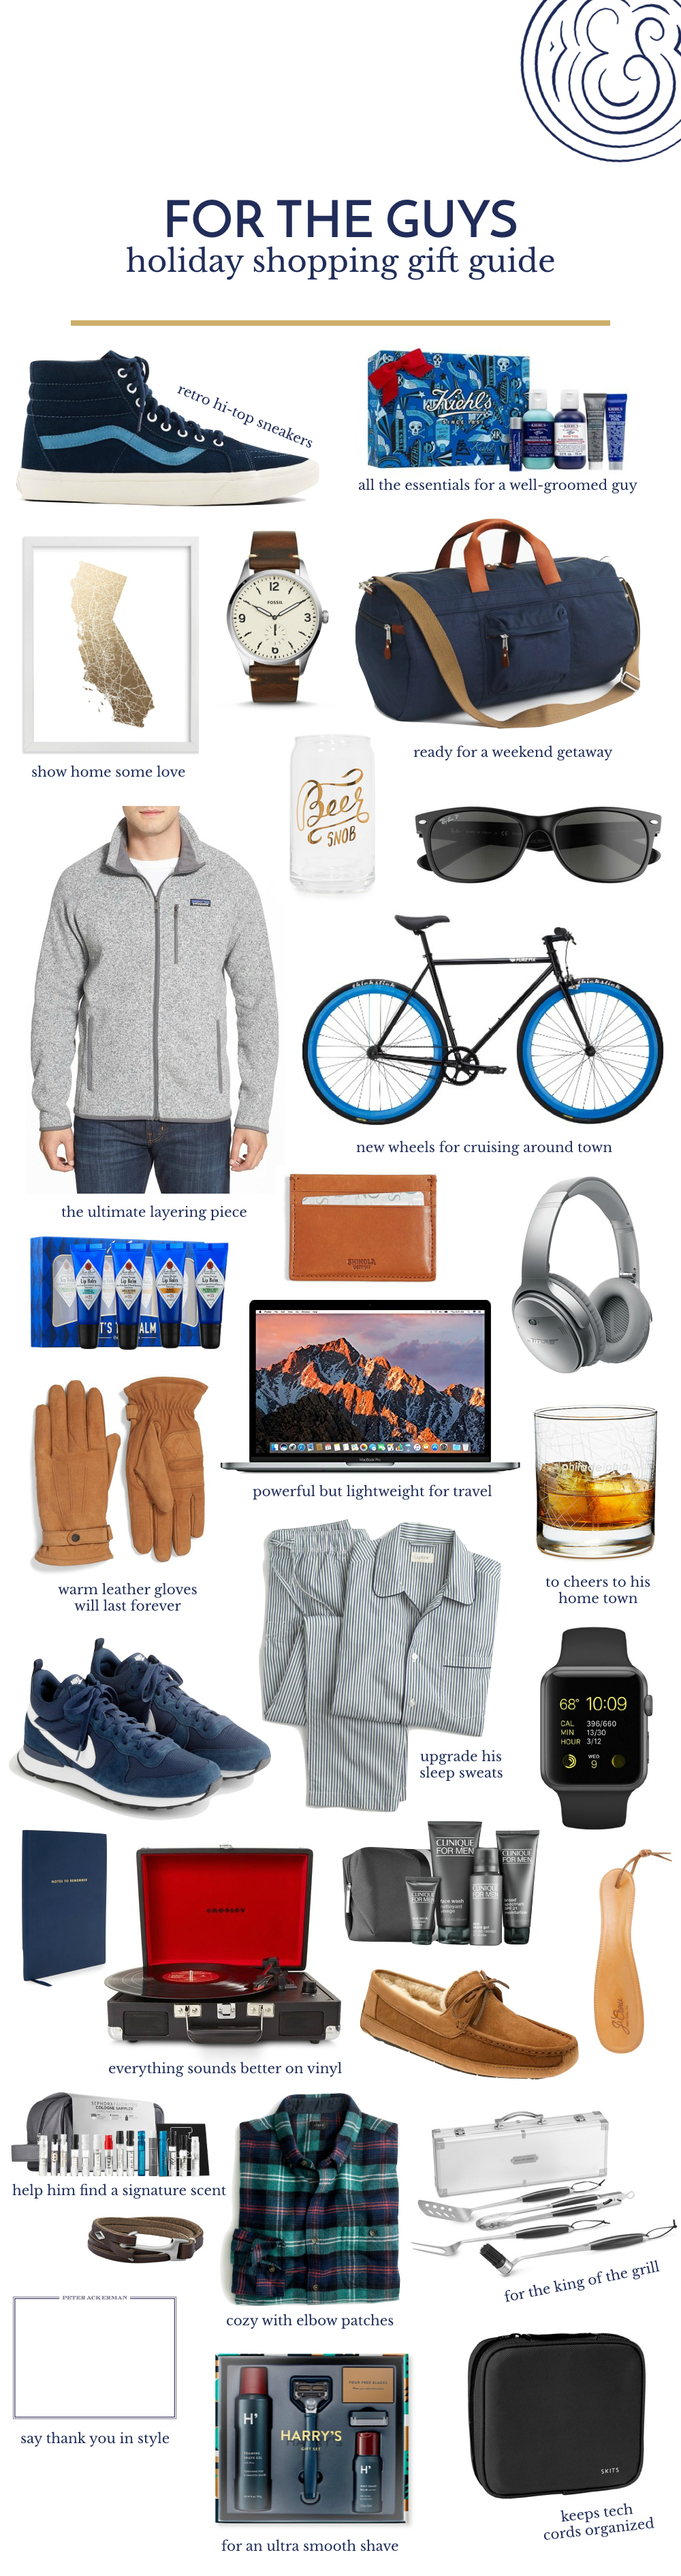 Holiday Gift Ideas for The Guys.